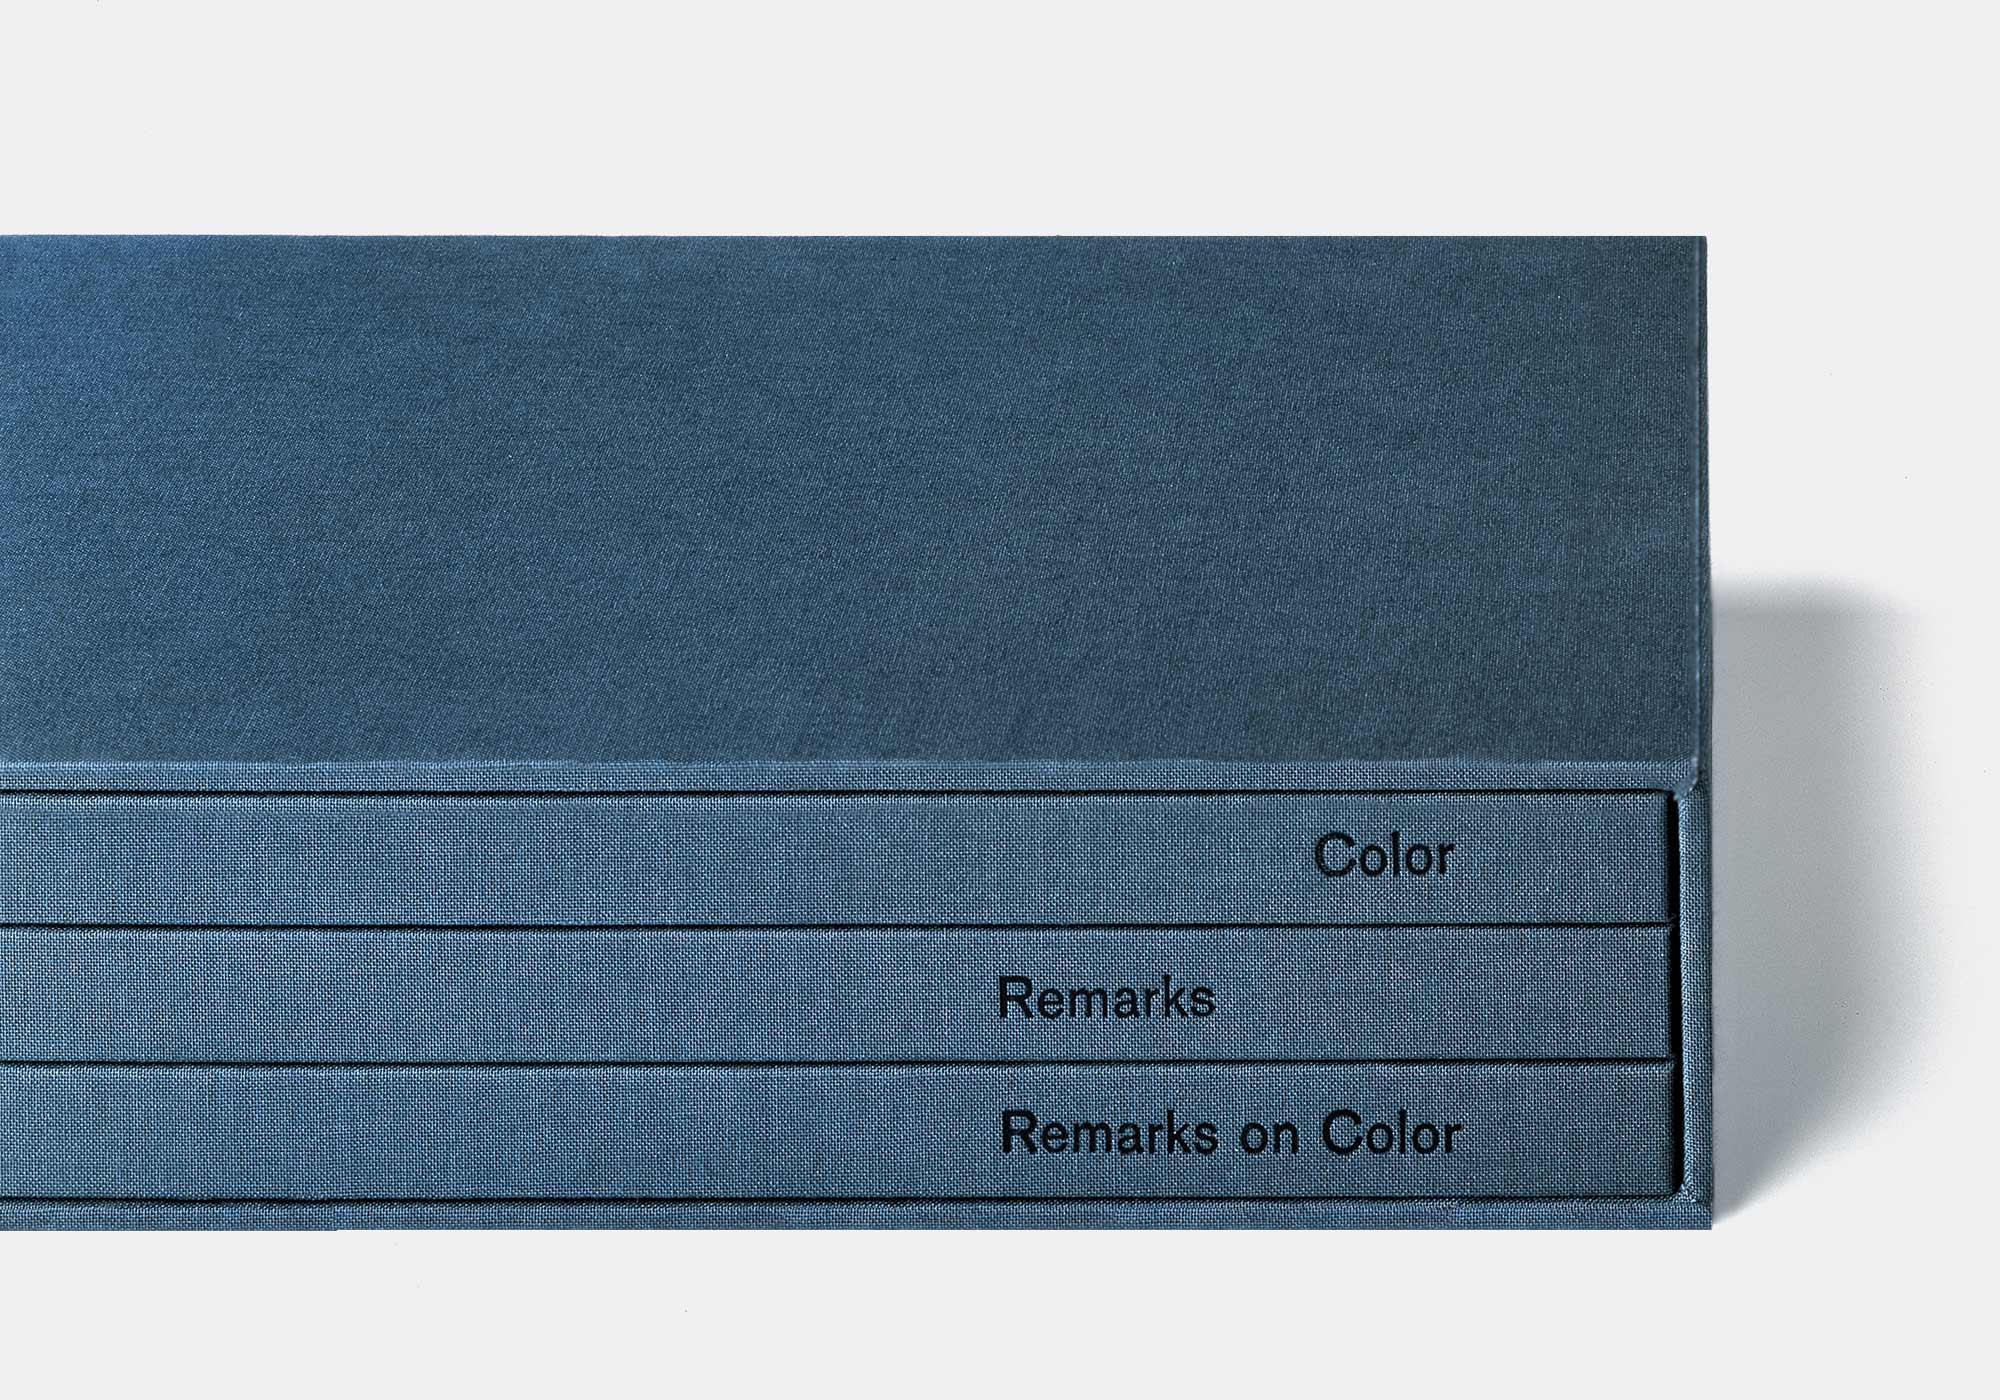 REMARKS ON COLOR